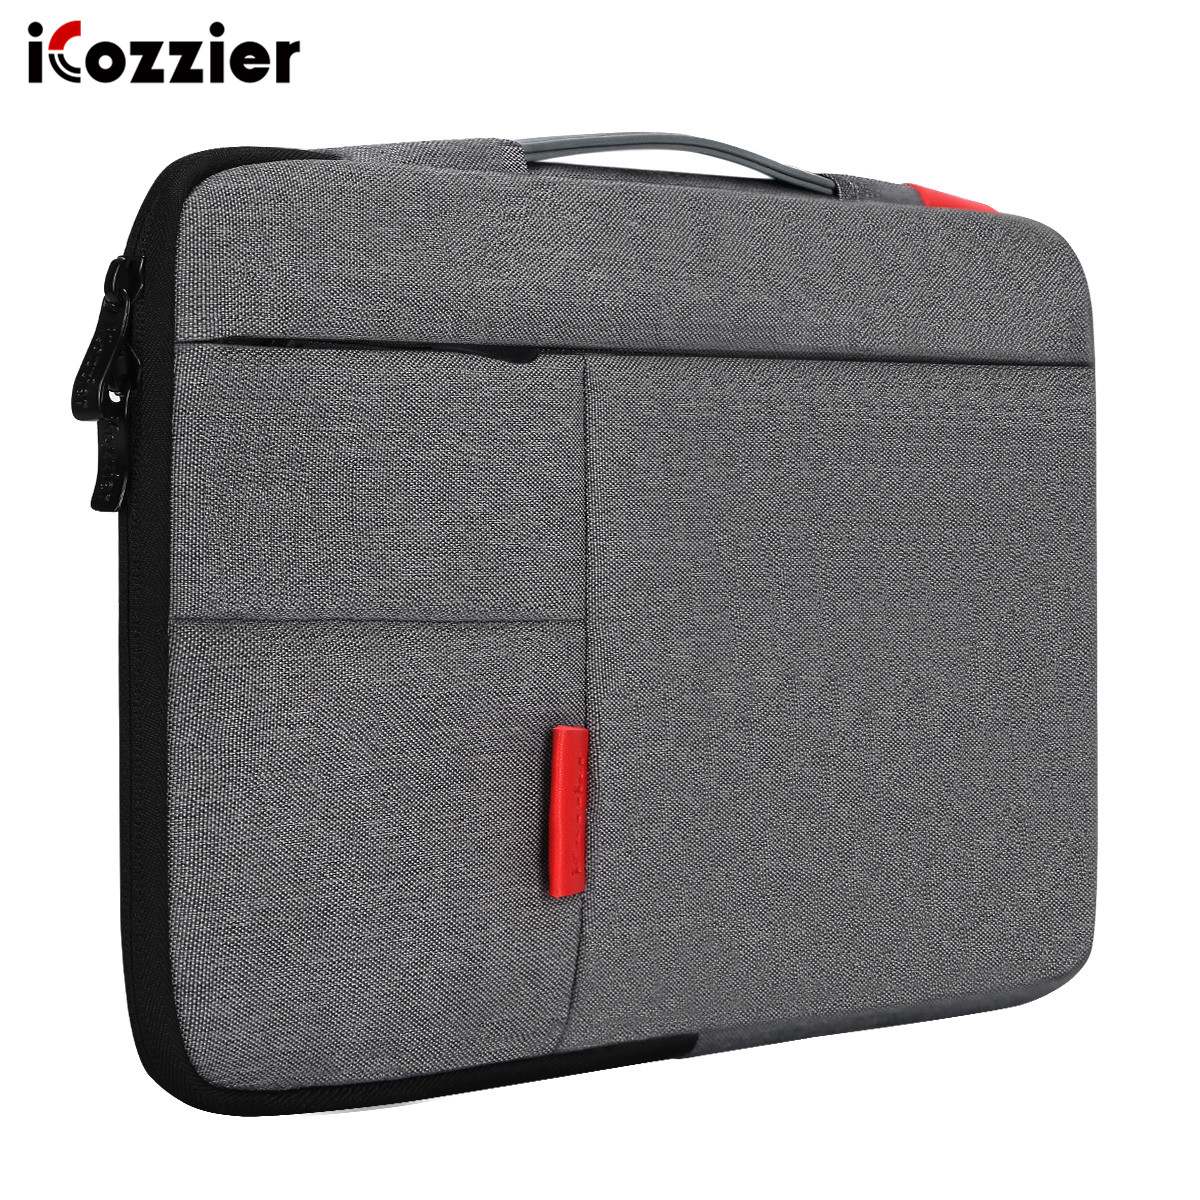 ICozzier 13.3/15.4/15.6 Man Notebook Laptop Sleeve Bag Pouch Case For Dell HP Asus Lenovo Macbook Pro 15.6